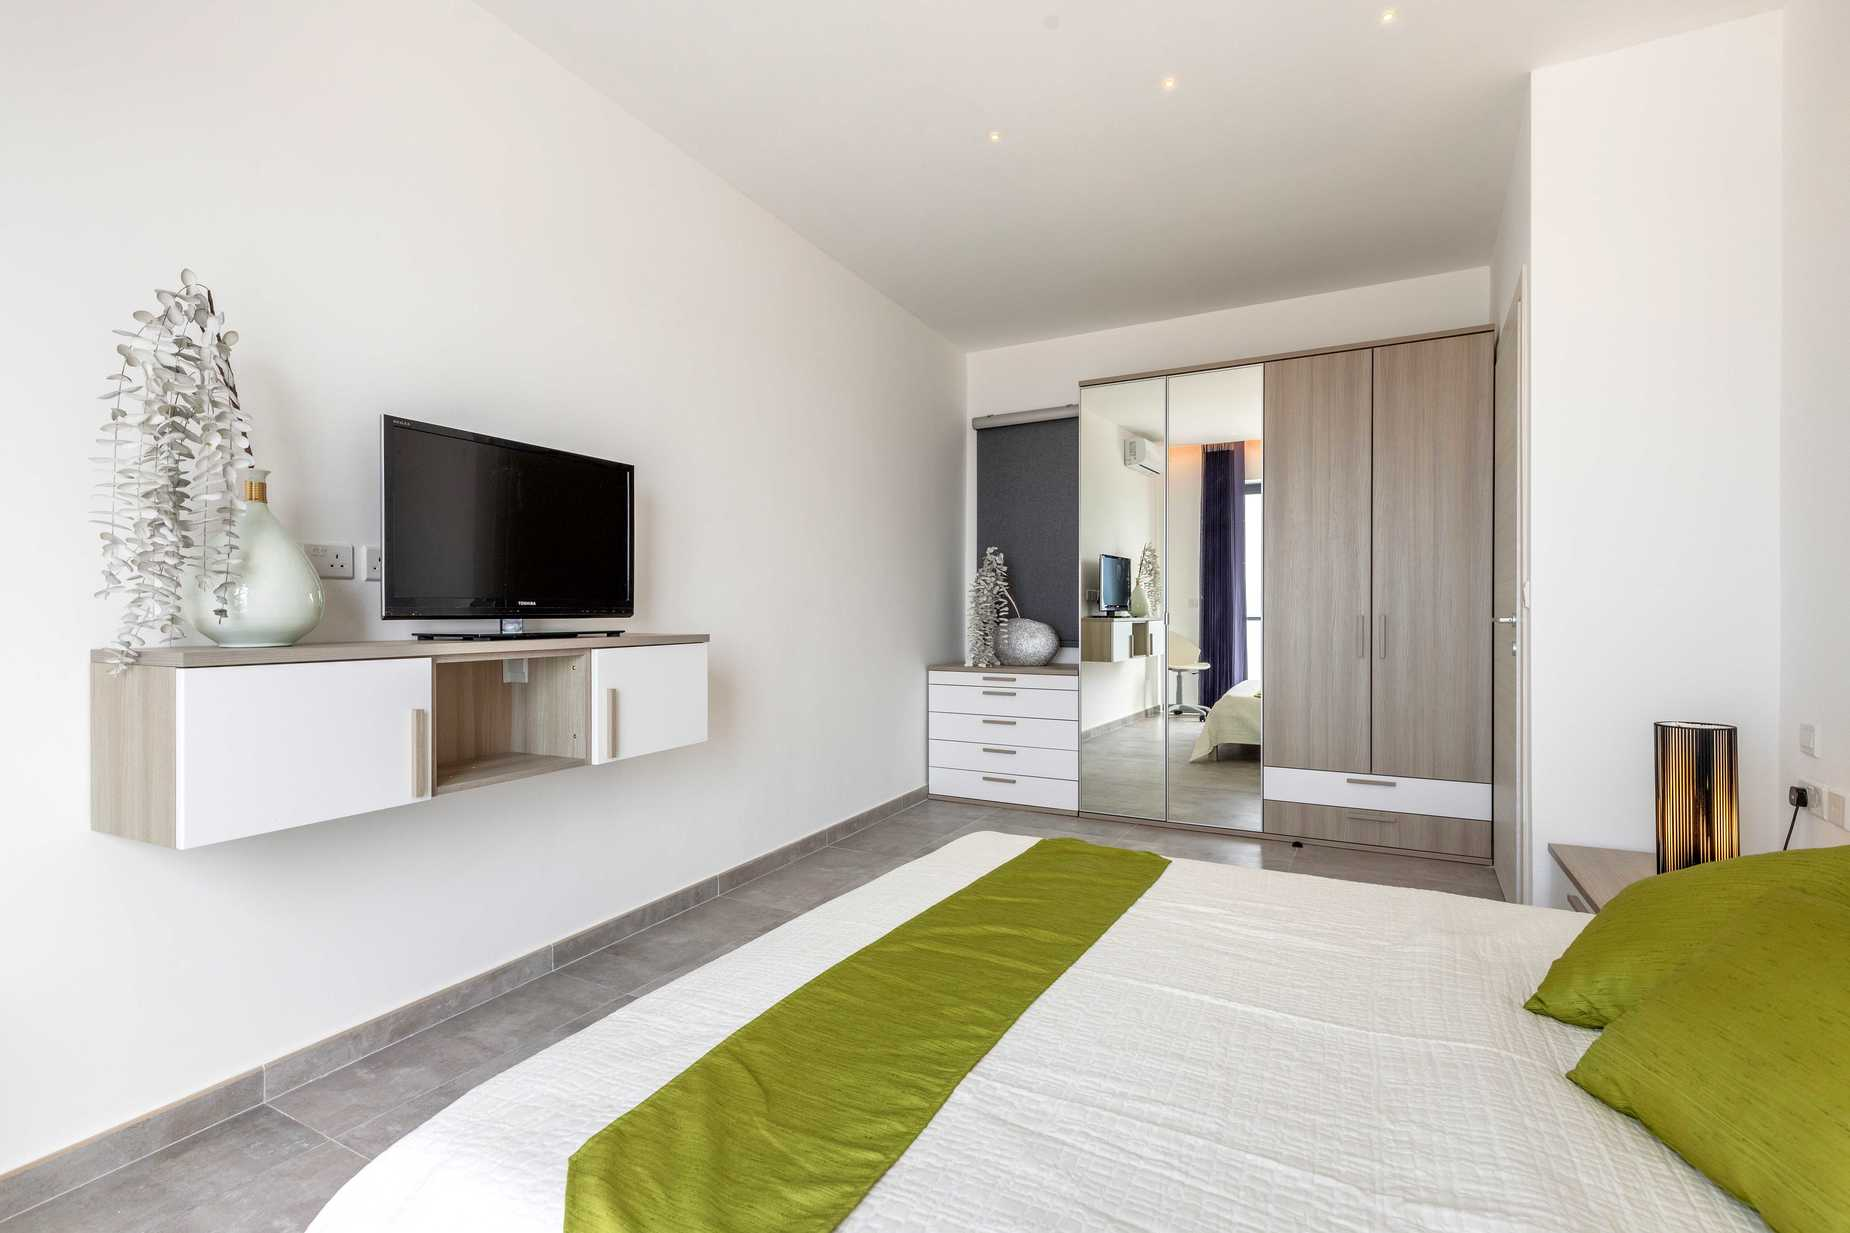 3 bed Penthouse For Rent in Mellieha, Mellieha - thumb 9